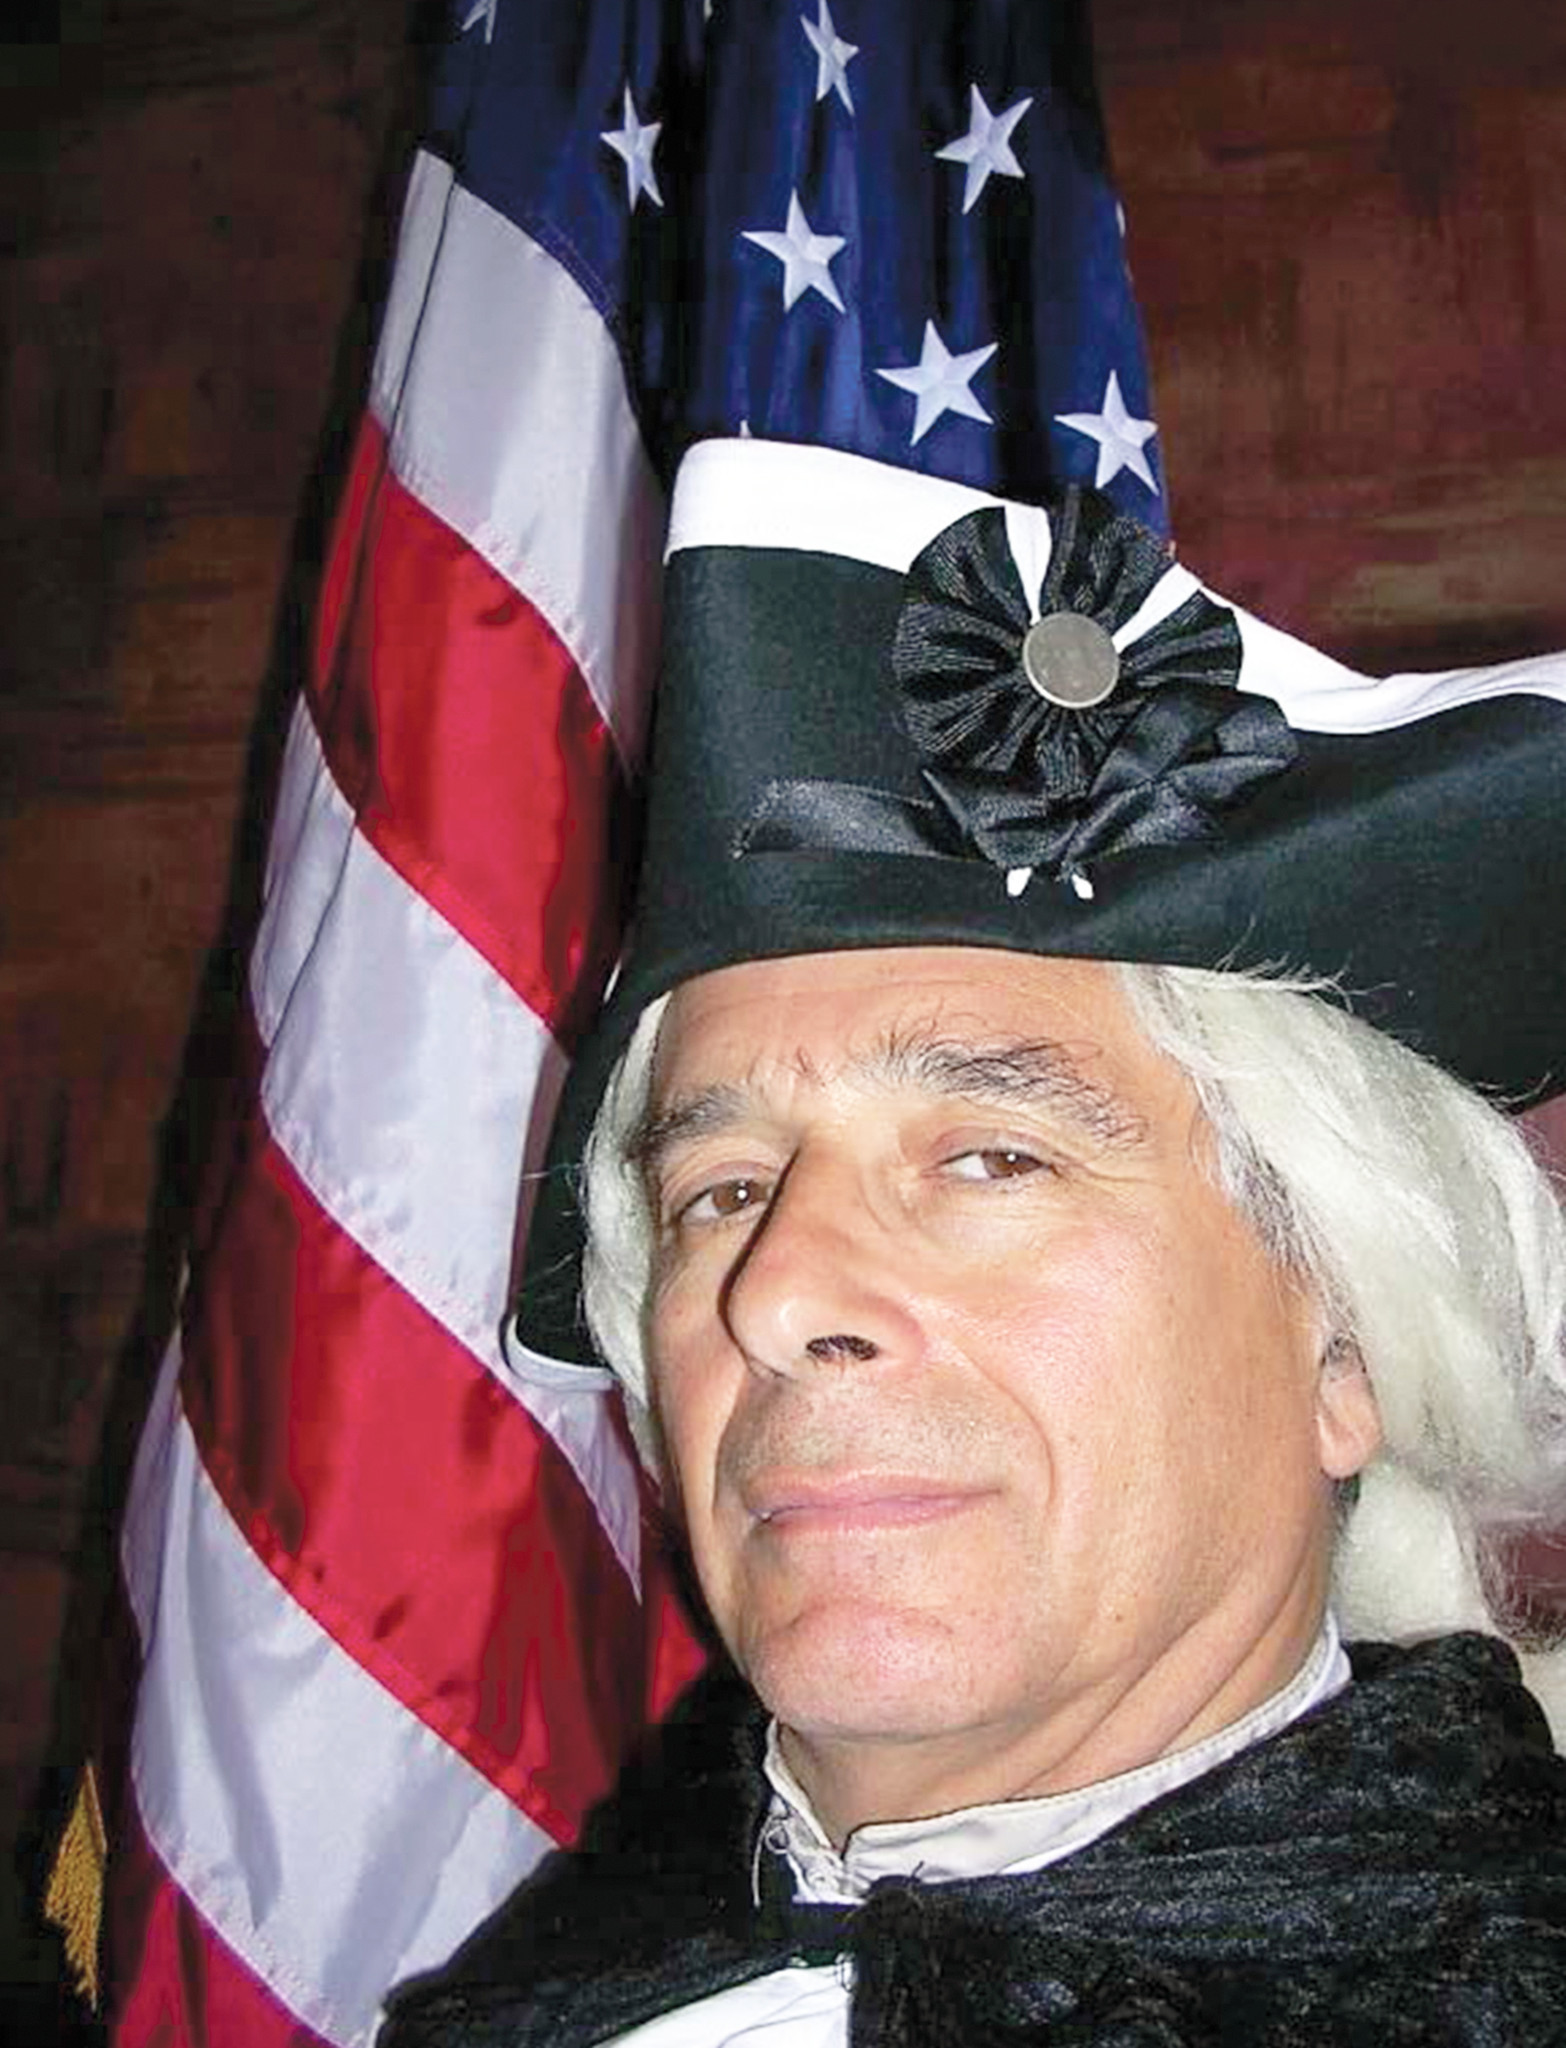 Historical re-enactor Peter M. Small as George Washington.